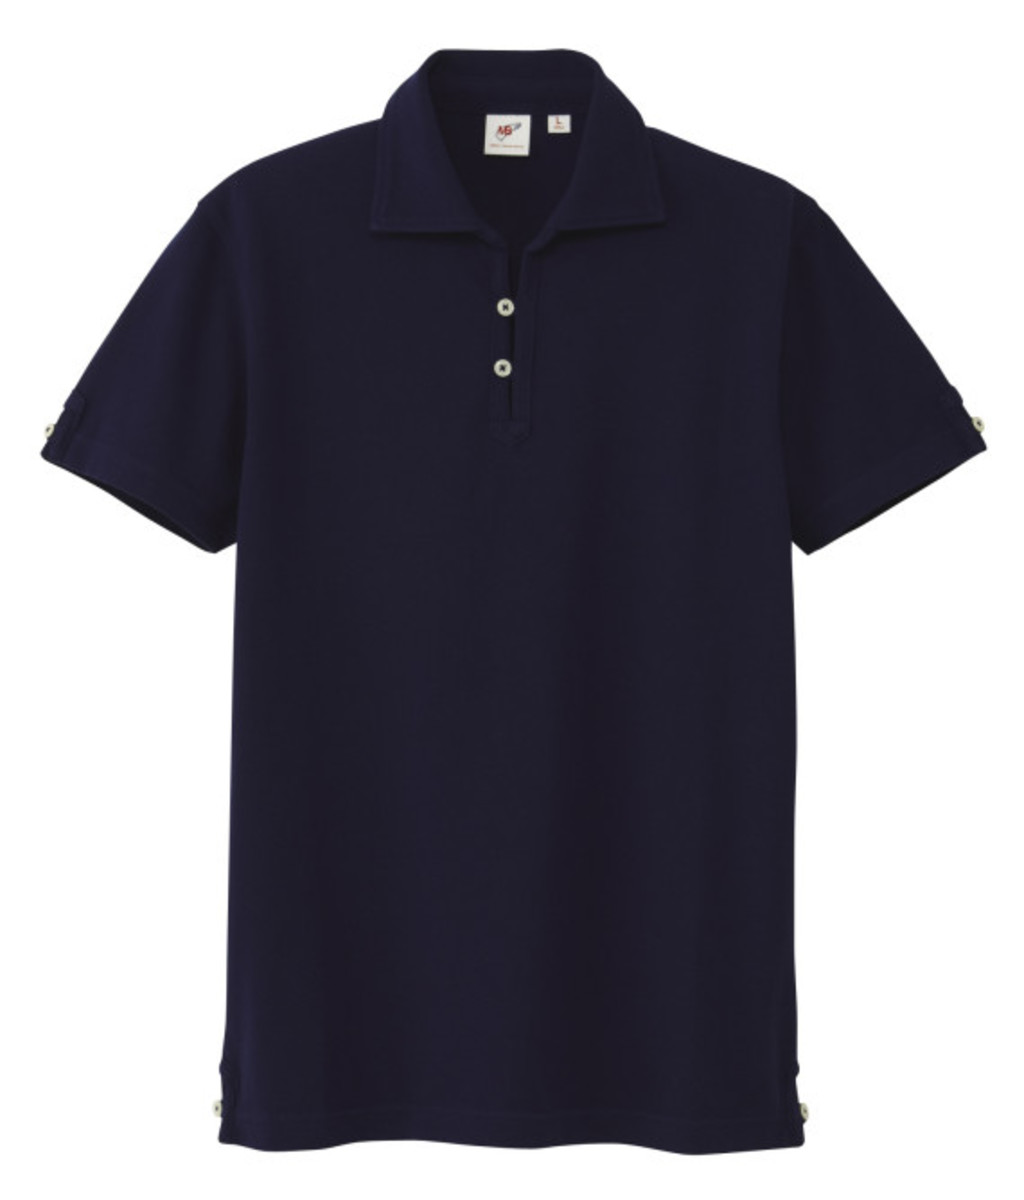 michael-bastian-x-uniqlo-mens-polo-shirt-collection-2013-02